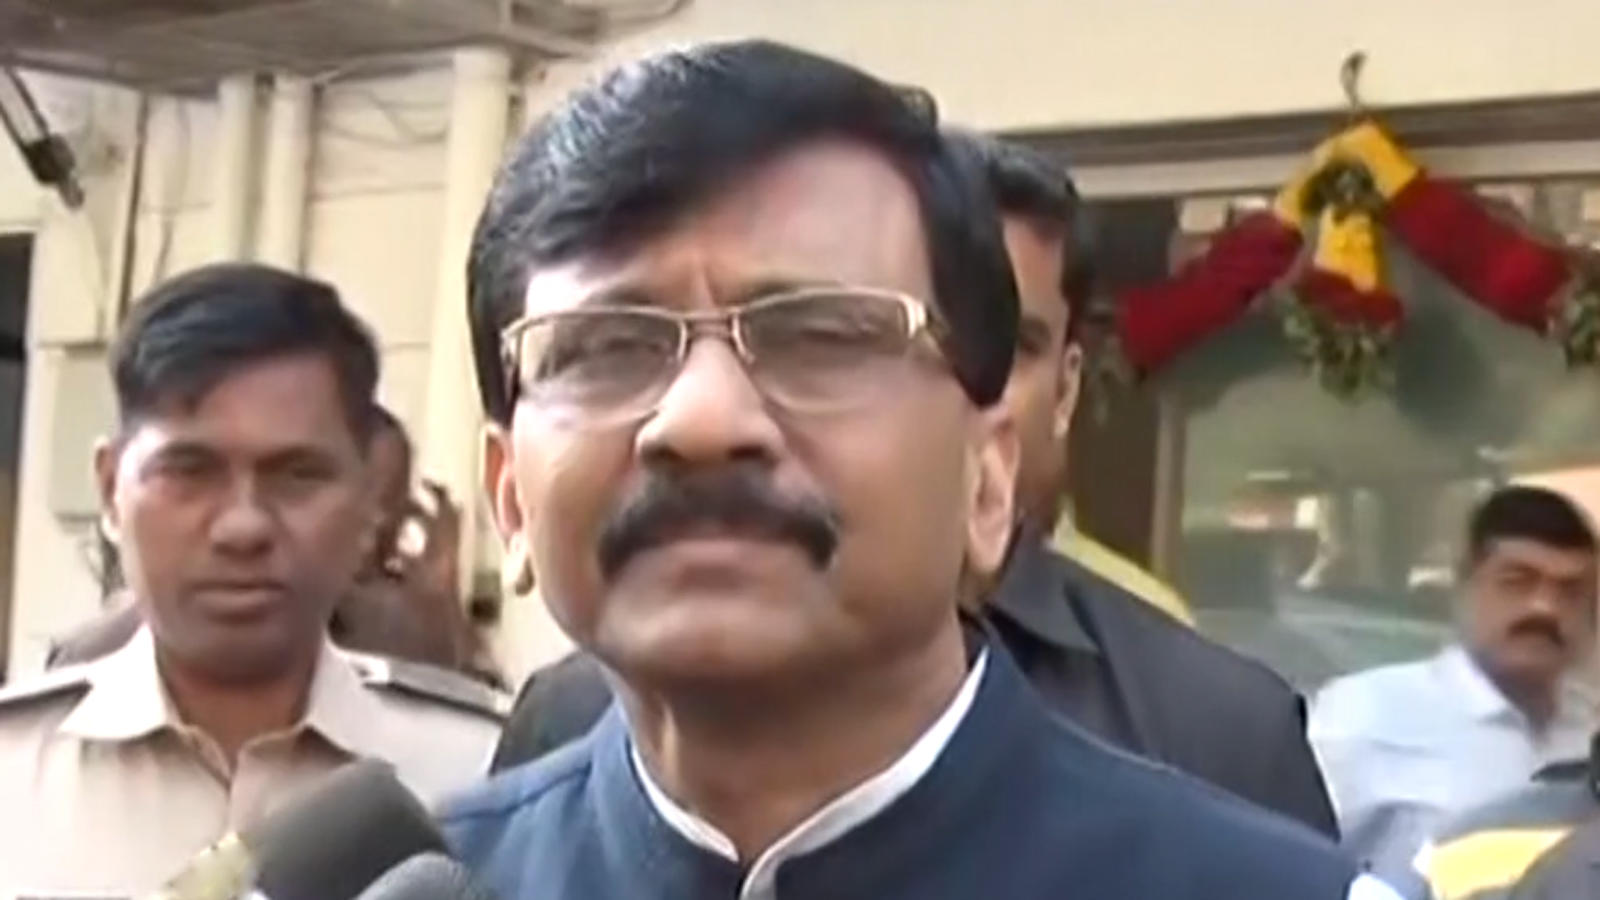 will-go-to-belgaum-to-attend-programs-let-there-be-prohibitions-sanjay-raut